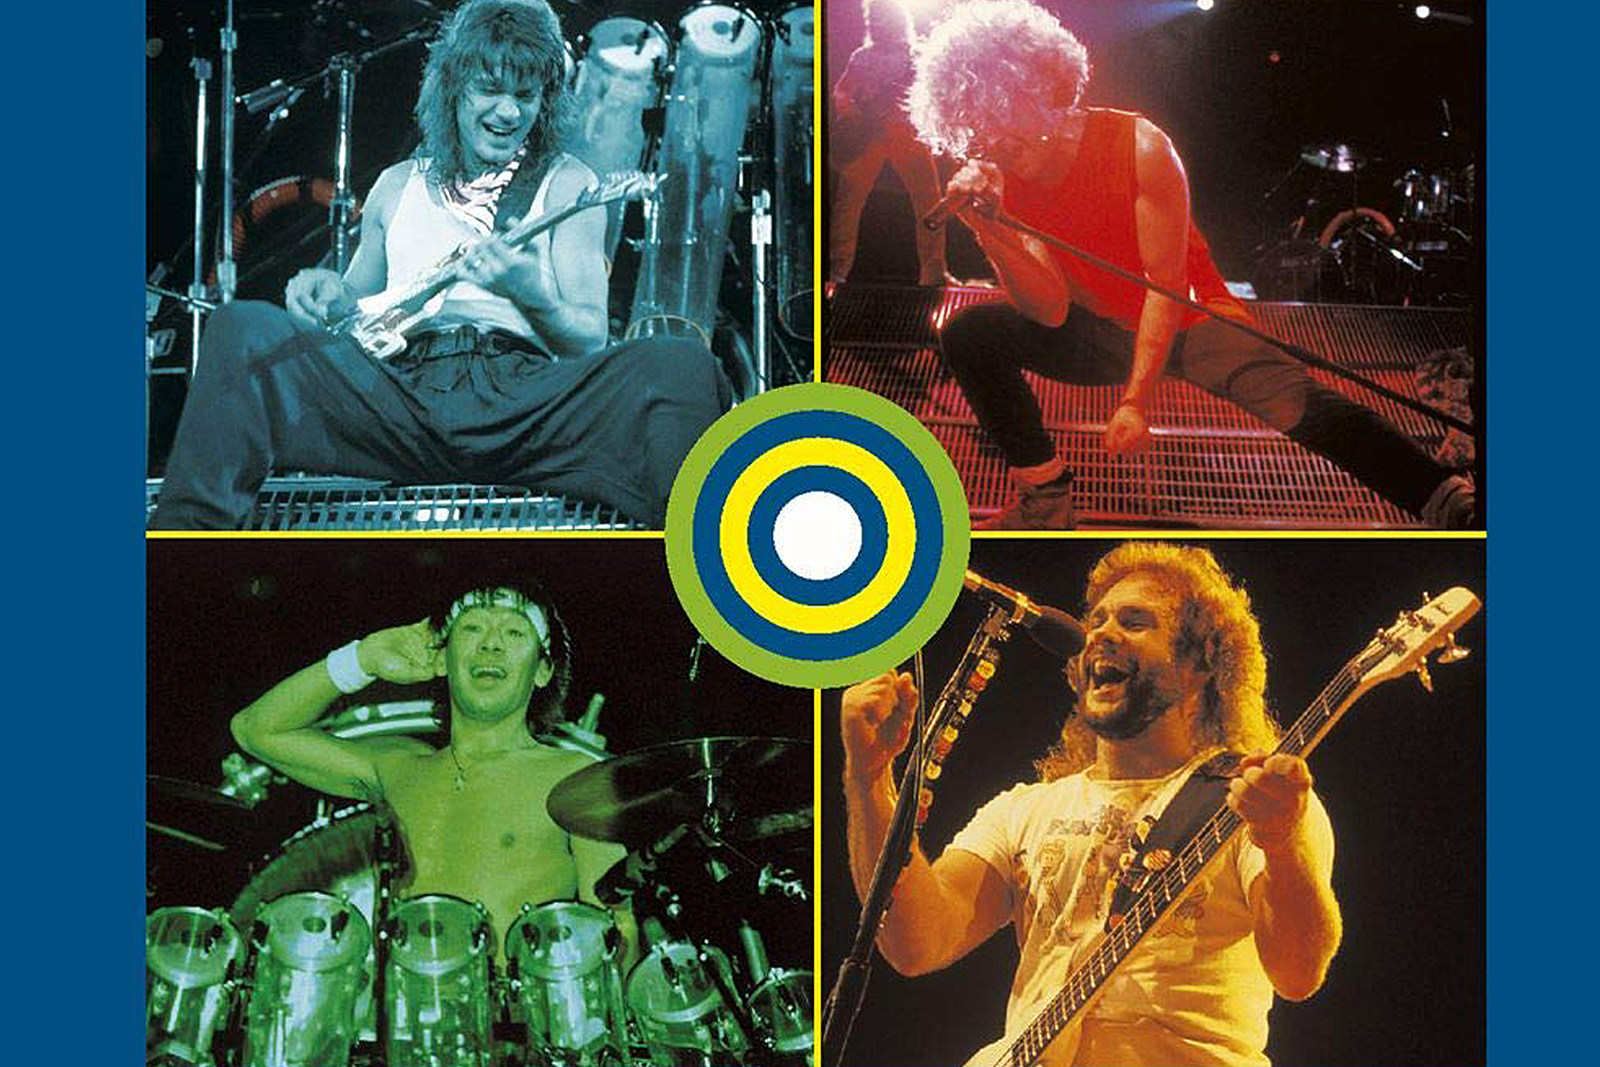 How Van Halen Tightened Up Their Act for 'Live Without a Net'